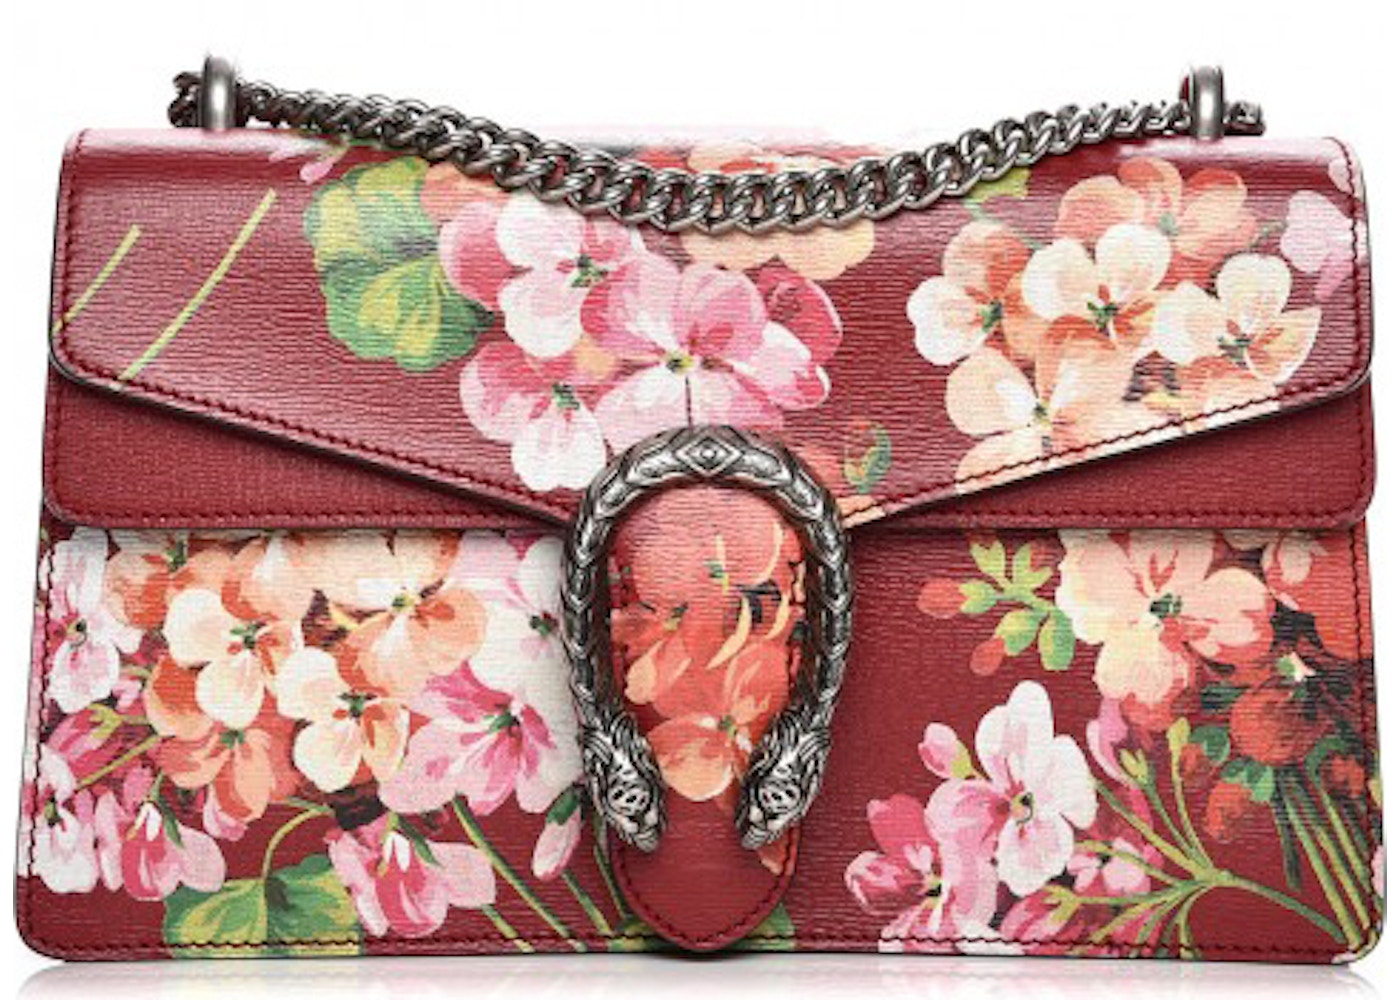 a370844af Gucci Dionysus Shoulder Bag Blooms Small Cerise Red/Green/Pink. Blooms Small  Cerise Red/Green/Pink